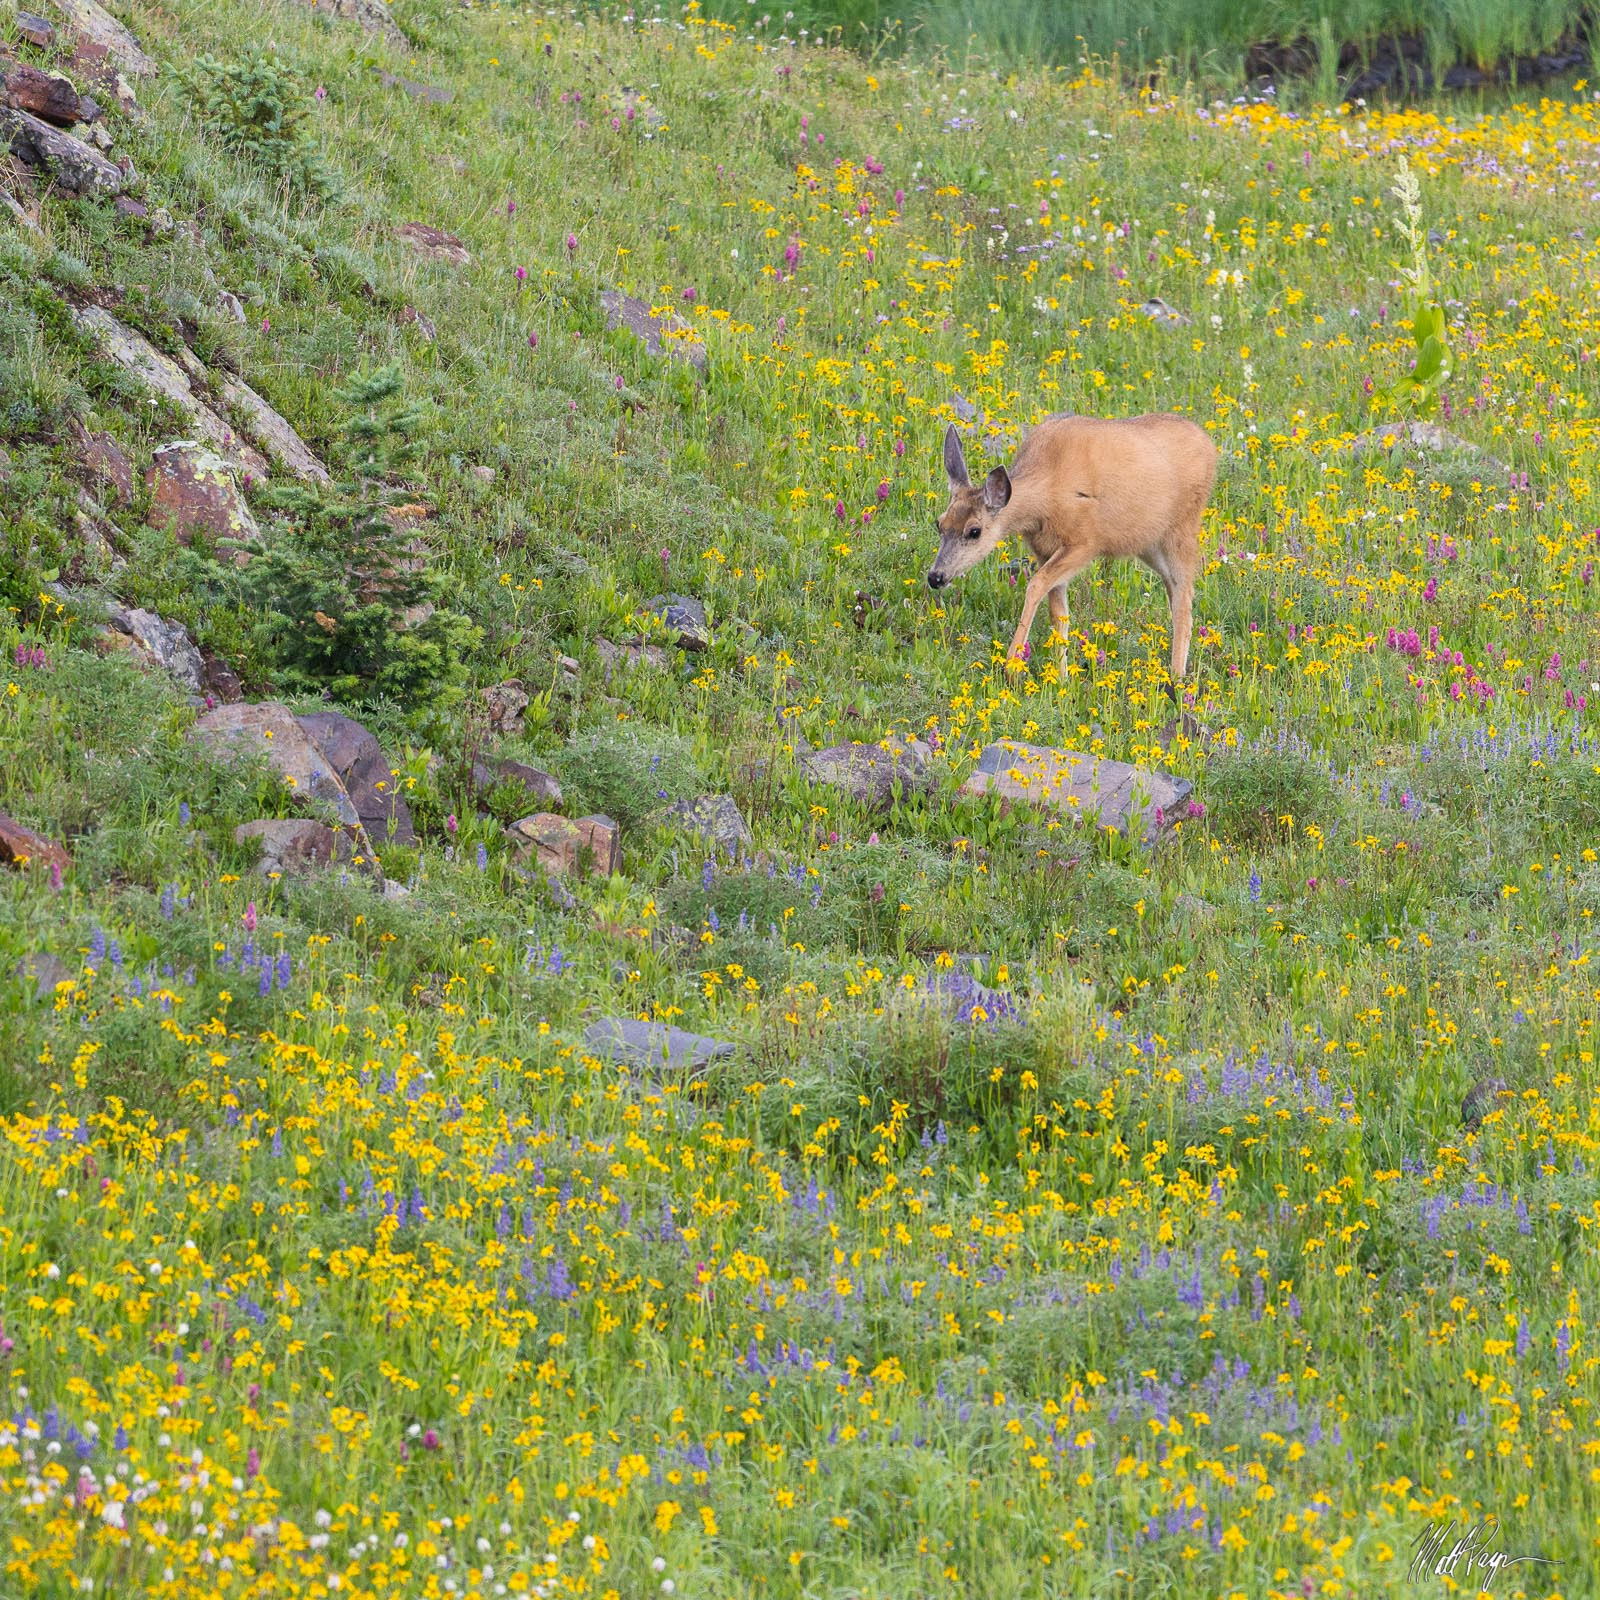 A deer found grazing in a field of wildflowers in summer above tree-line near Silverton, Colorado in the San Juan Mountains....